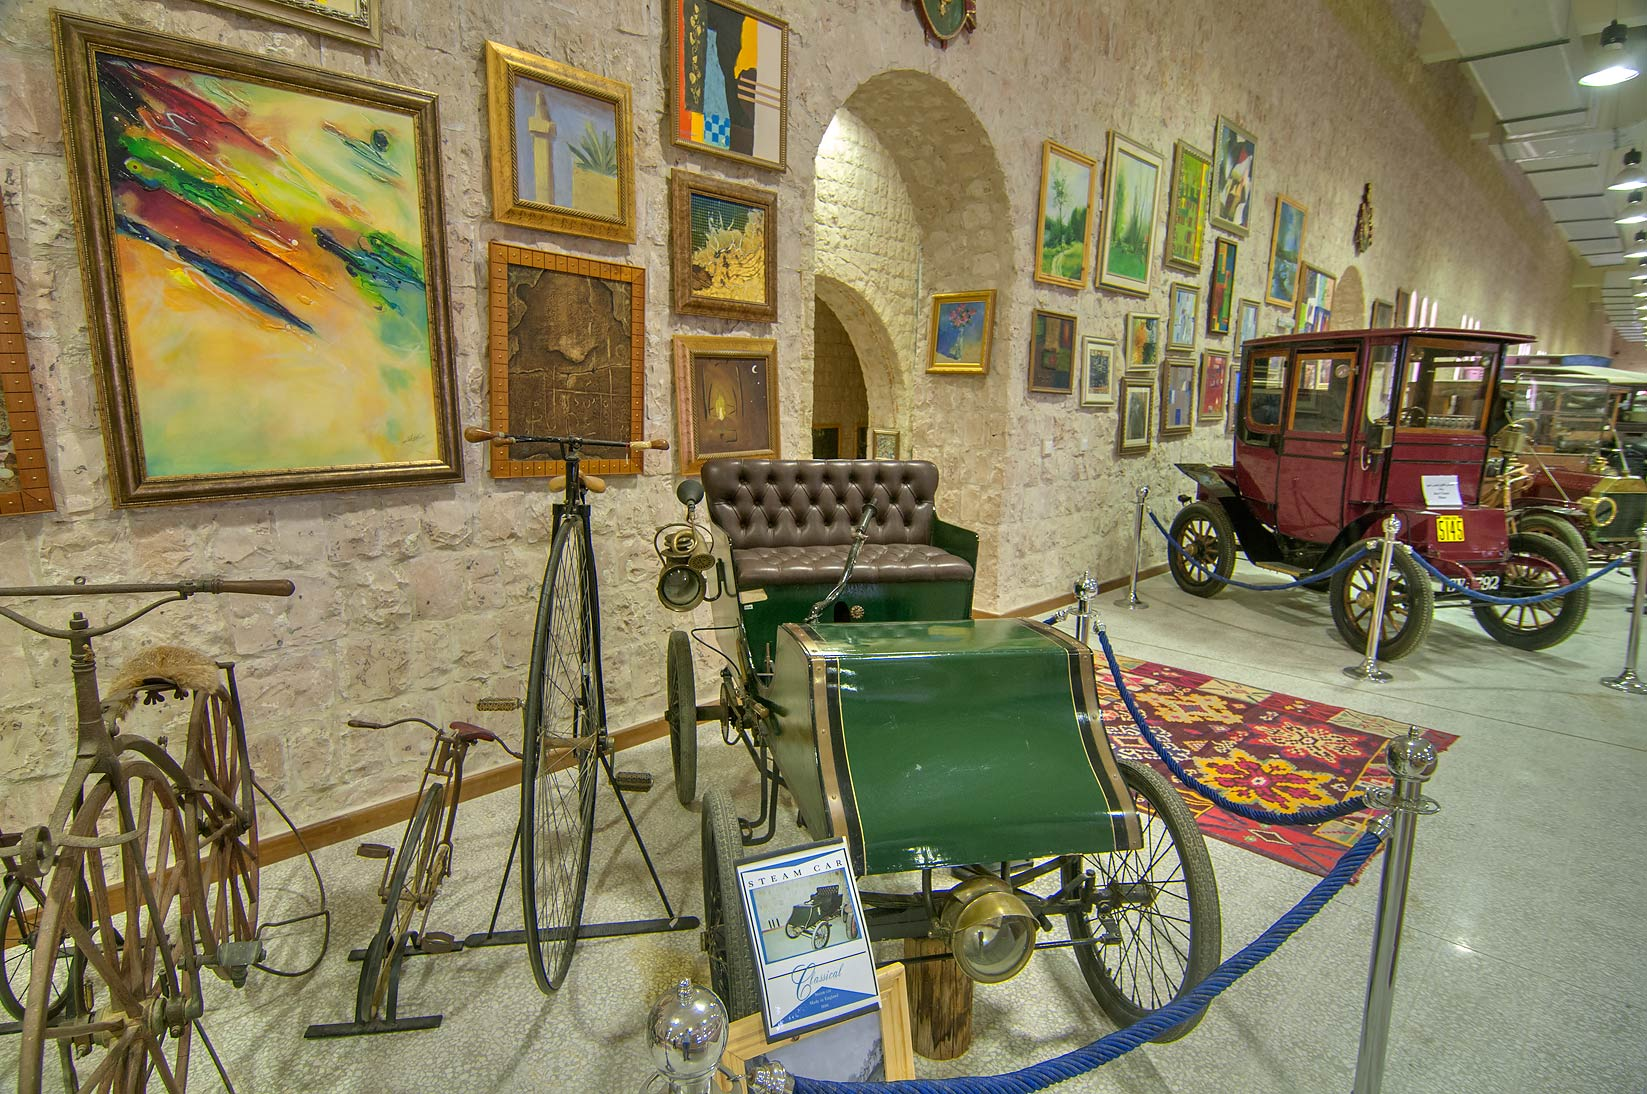 Antique cars an bicycles in Sheikh Faisal Bin...Museum near Al-Shahaniya. Doha, Qatar